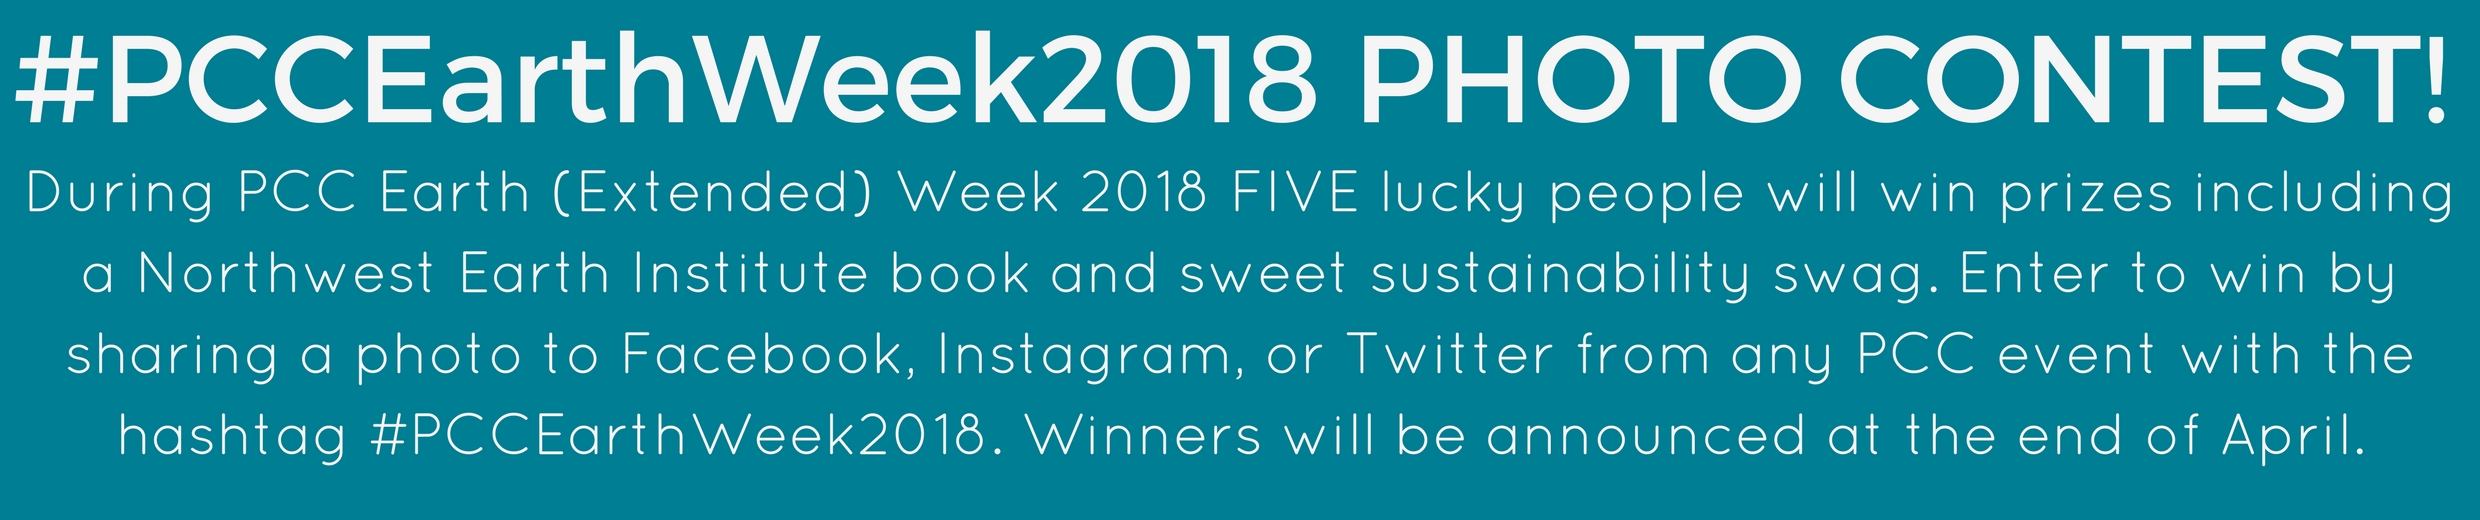 #PCCEarthWeek18 PHOTO CONTEST!